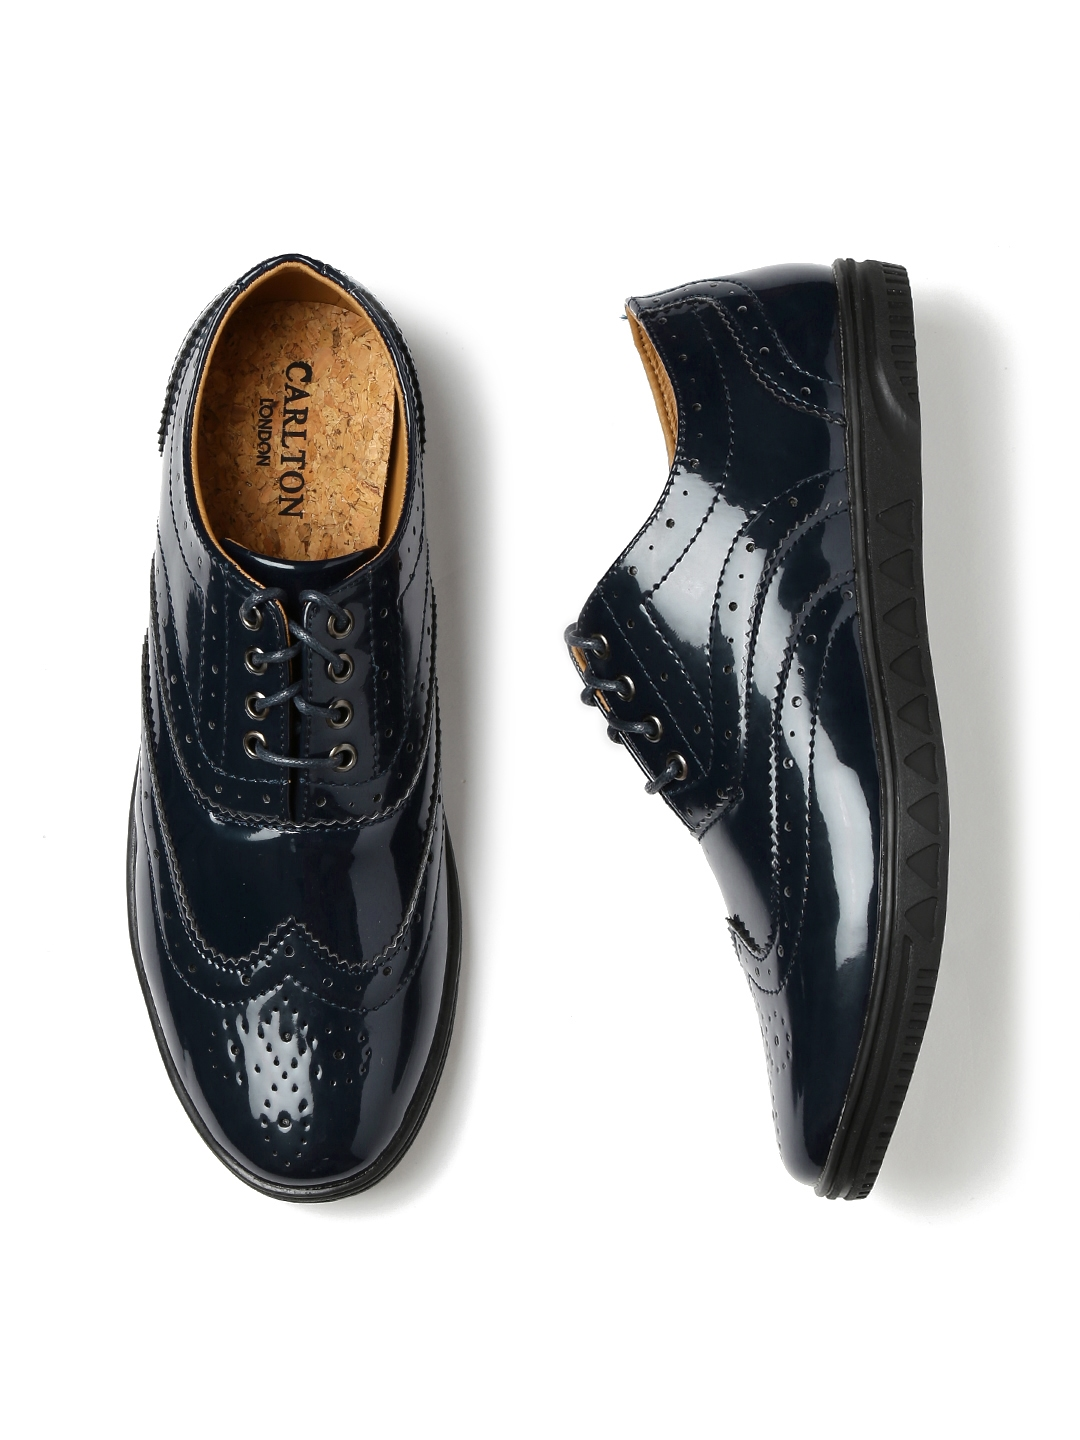 d90e45f0f34 Buy carlton london men navy patent leather brogues casual shoes jpg  1080x1440 Navy patent leather shoes